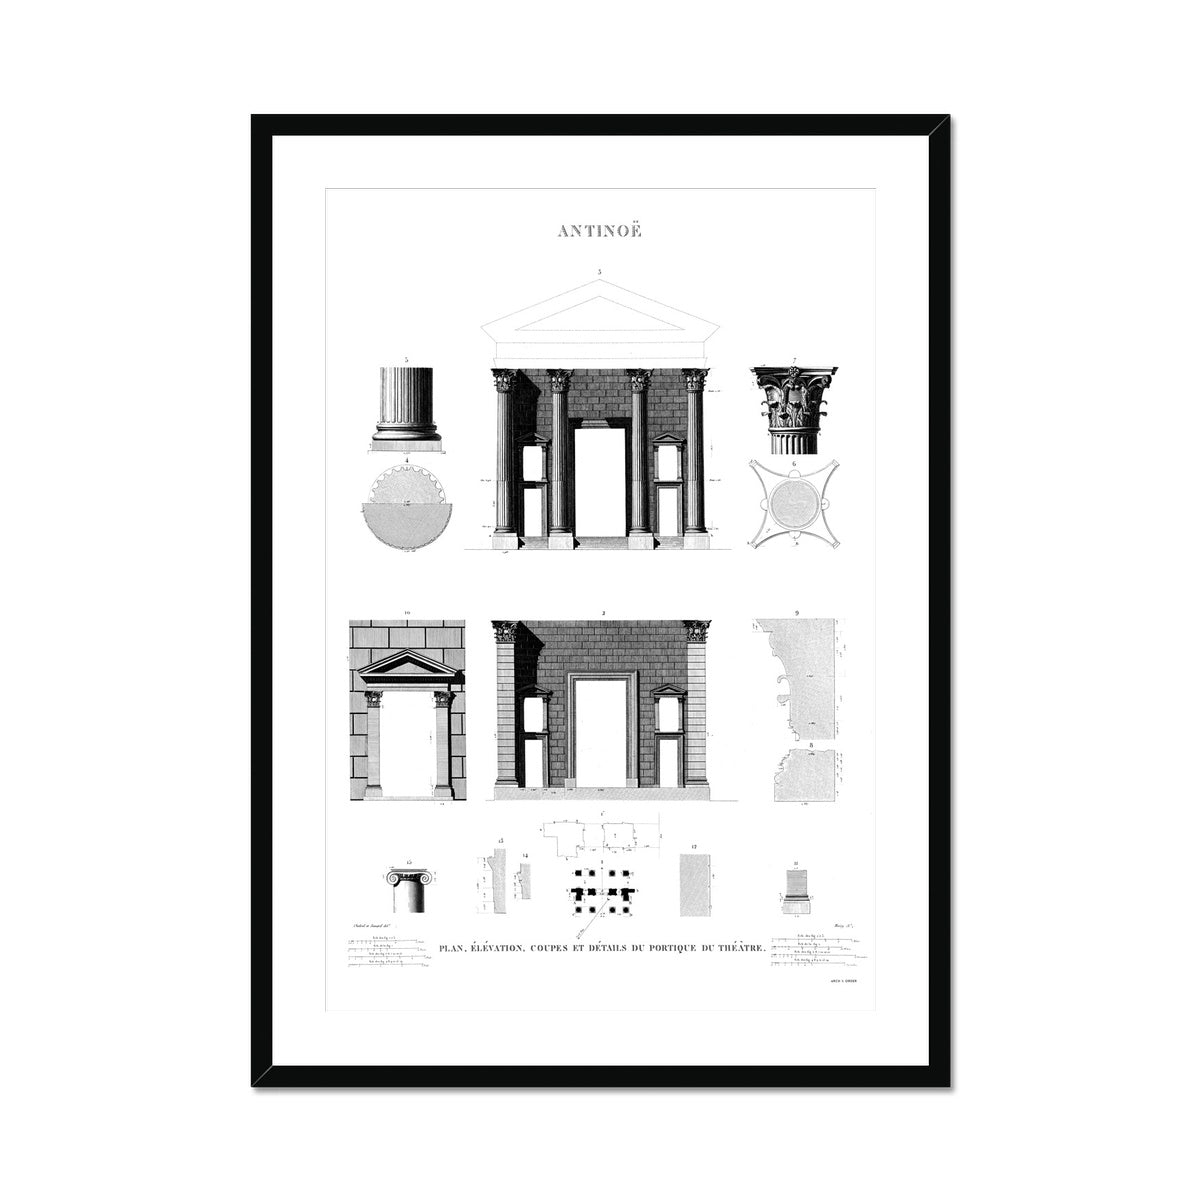 Theater Elevation - Antinoöpolis Egypt -  Framed & Mounted Print